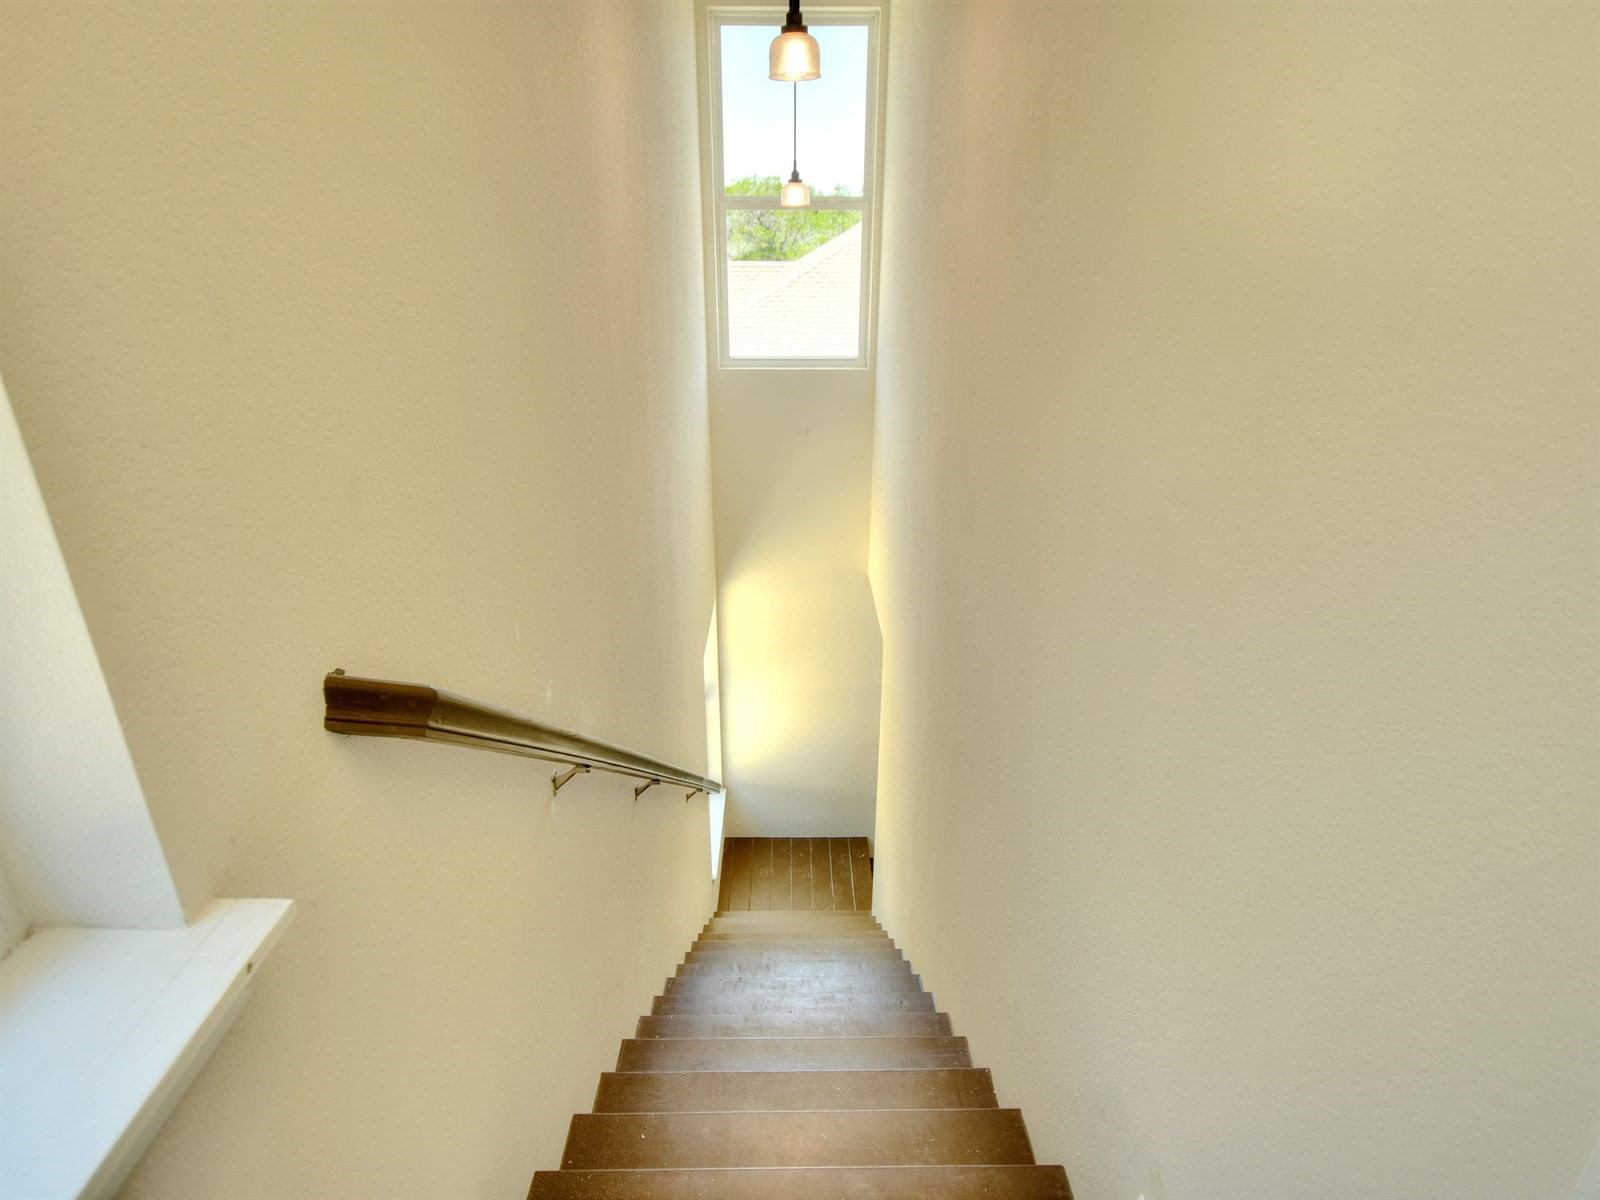 030_Stairs to Garage.jpg